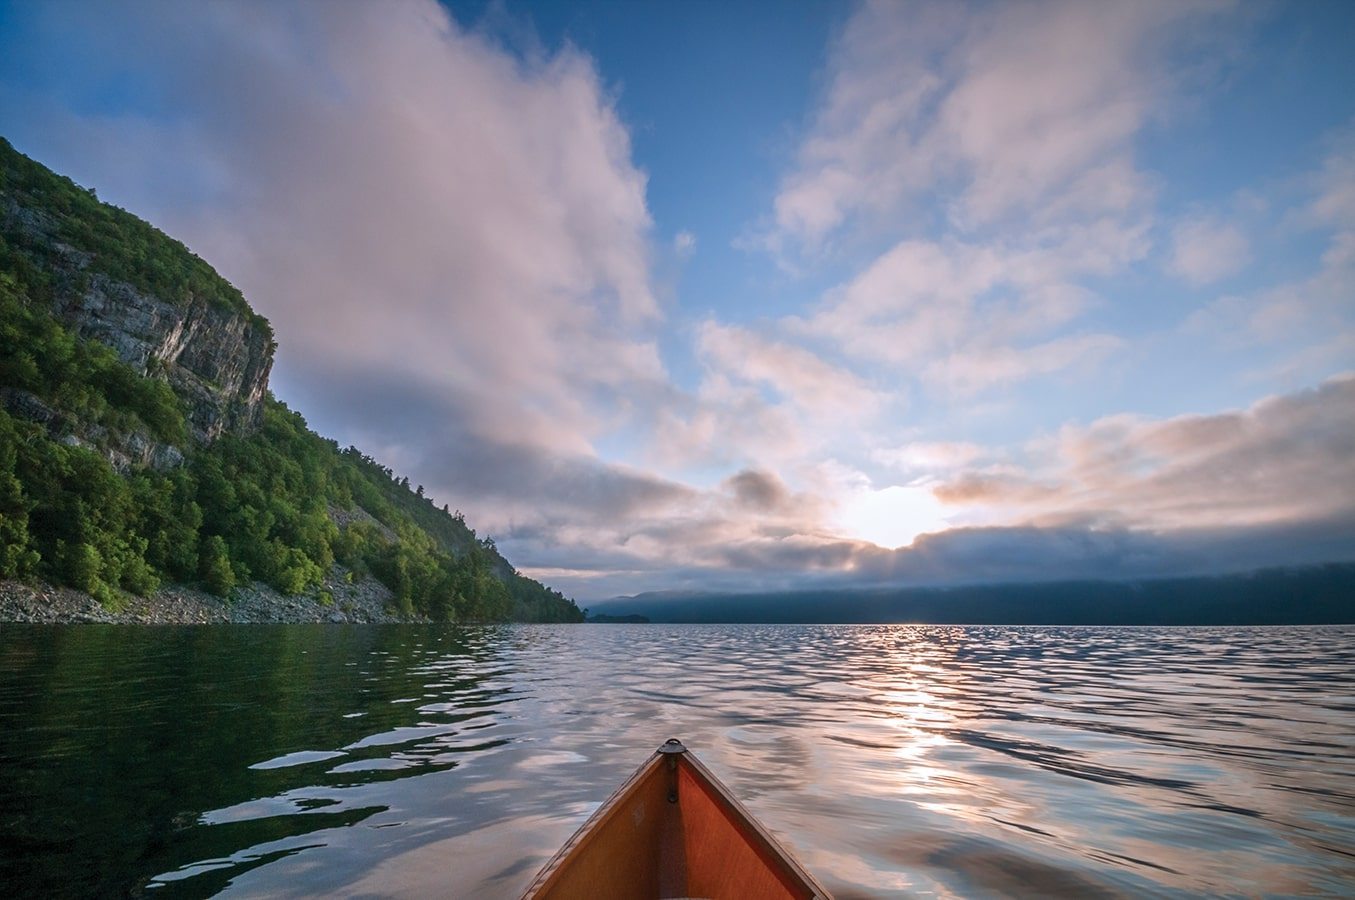 A canoe tip pointing towards a cliff and open lake